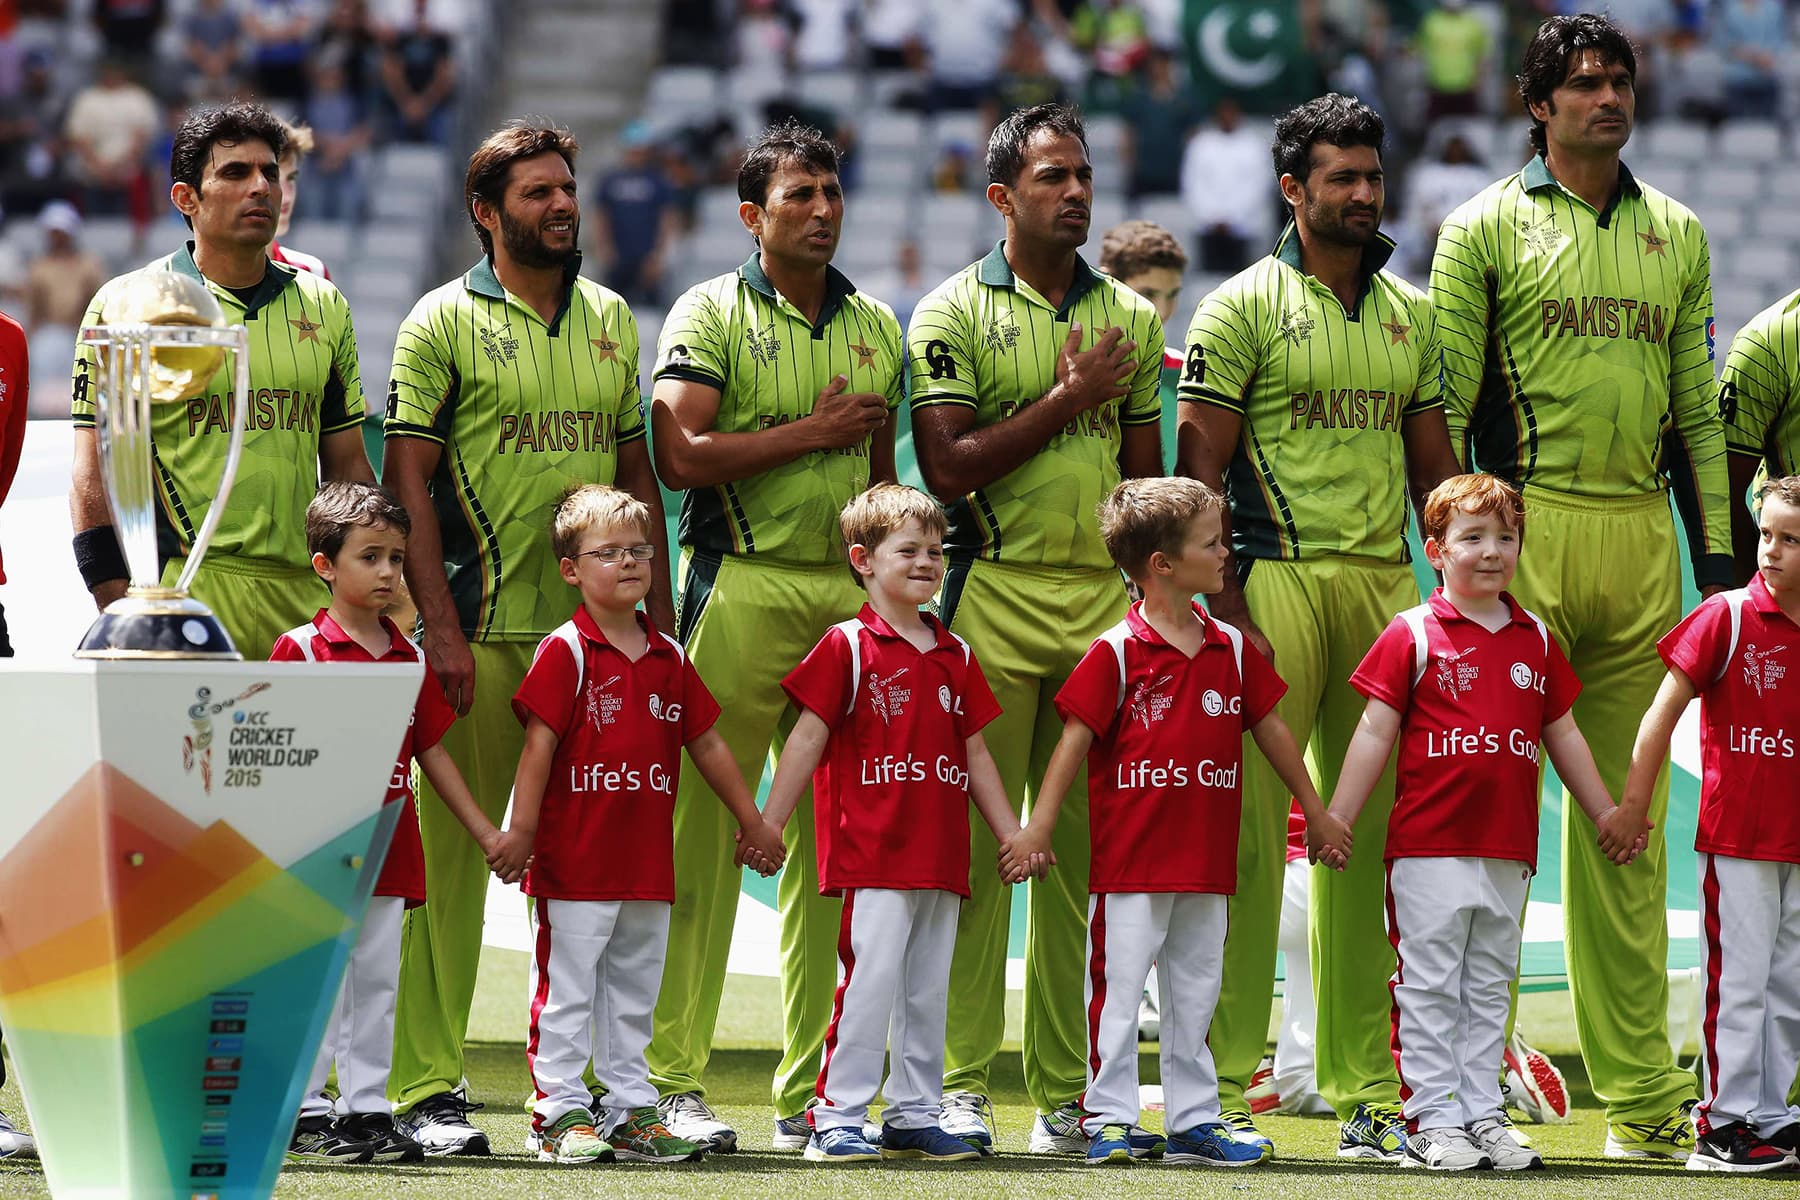 Pakistan team sings their national anthem before their World Cup encounter against South Africa in Auckland on March 7, 2015. — Reuters